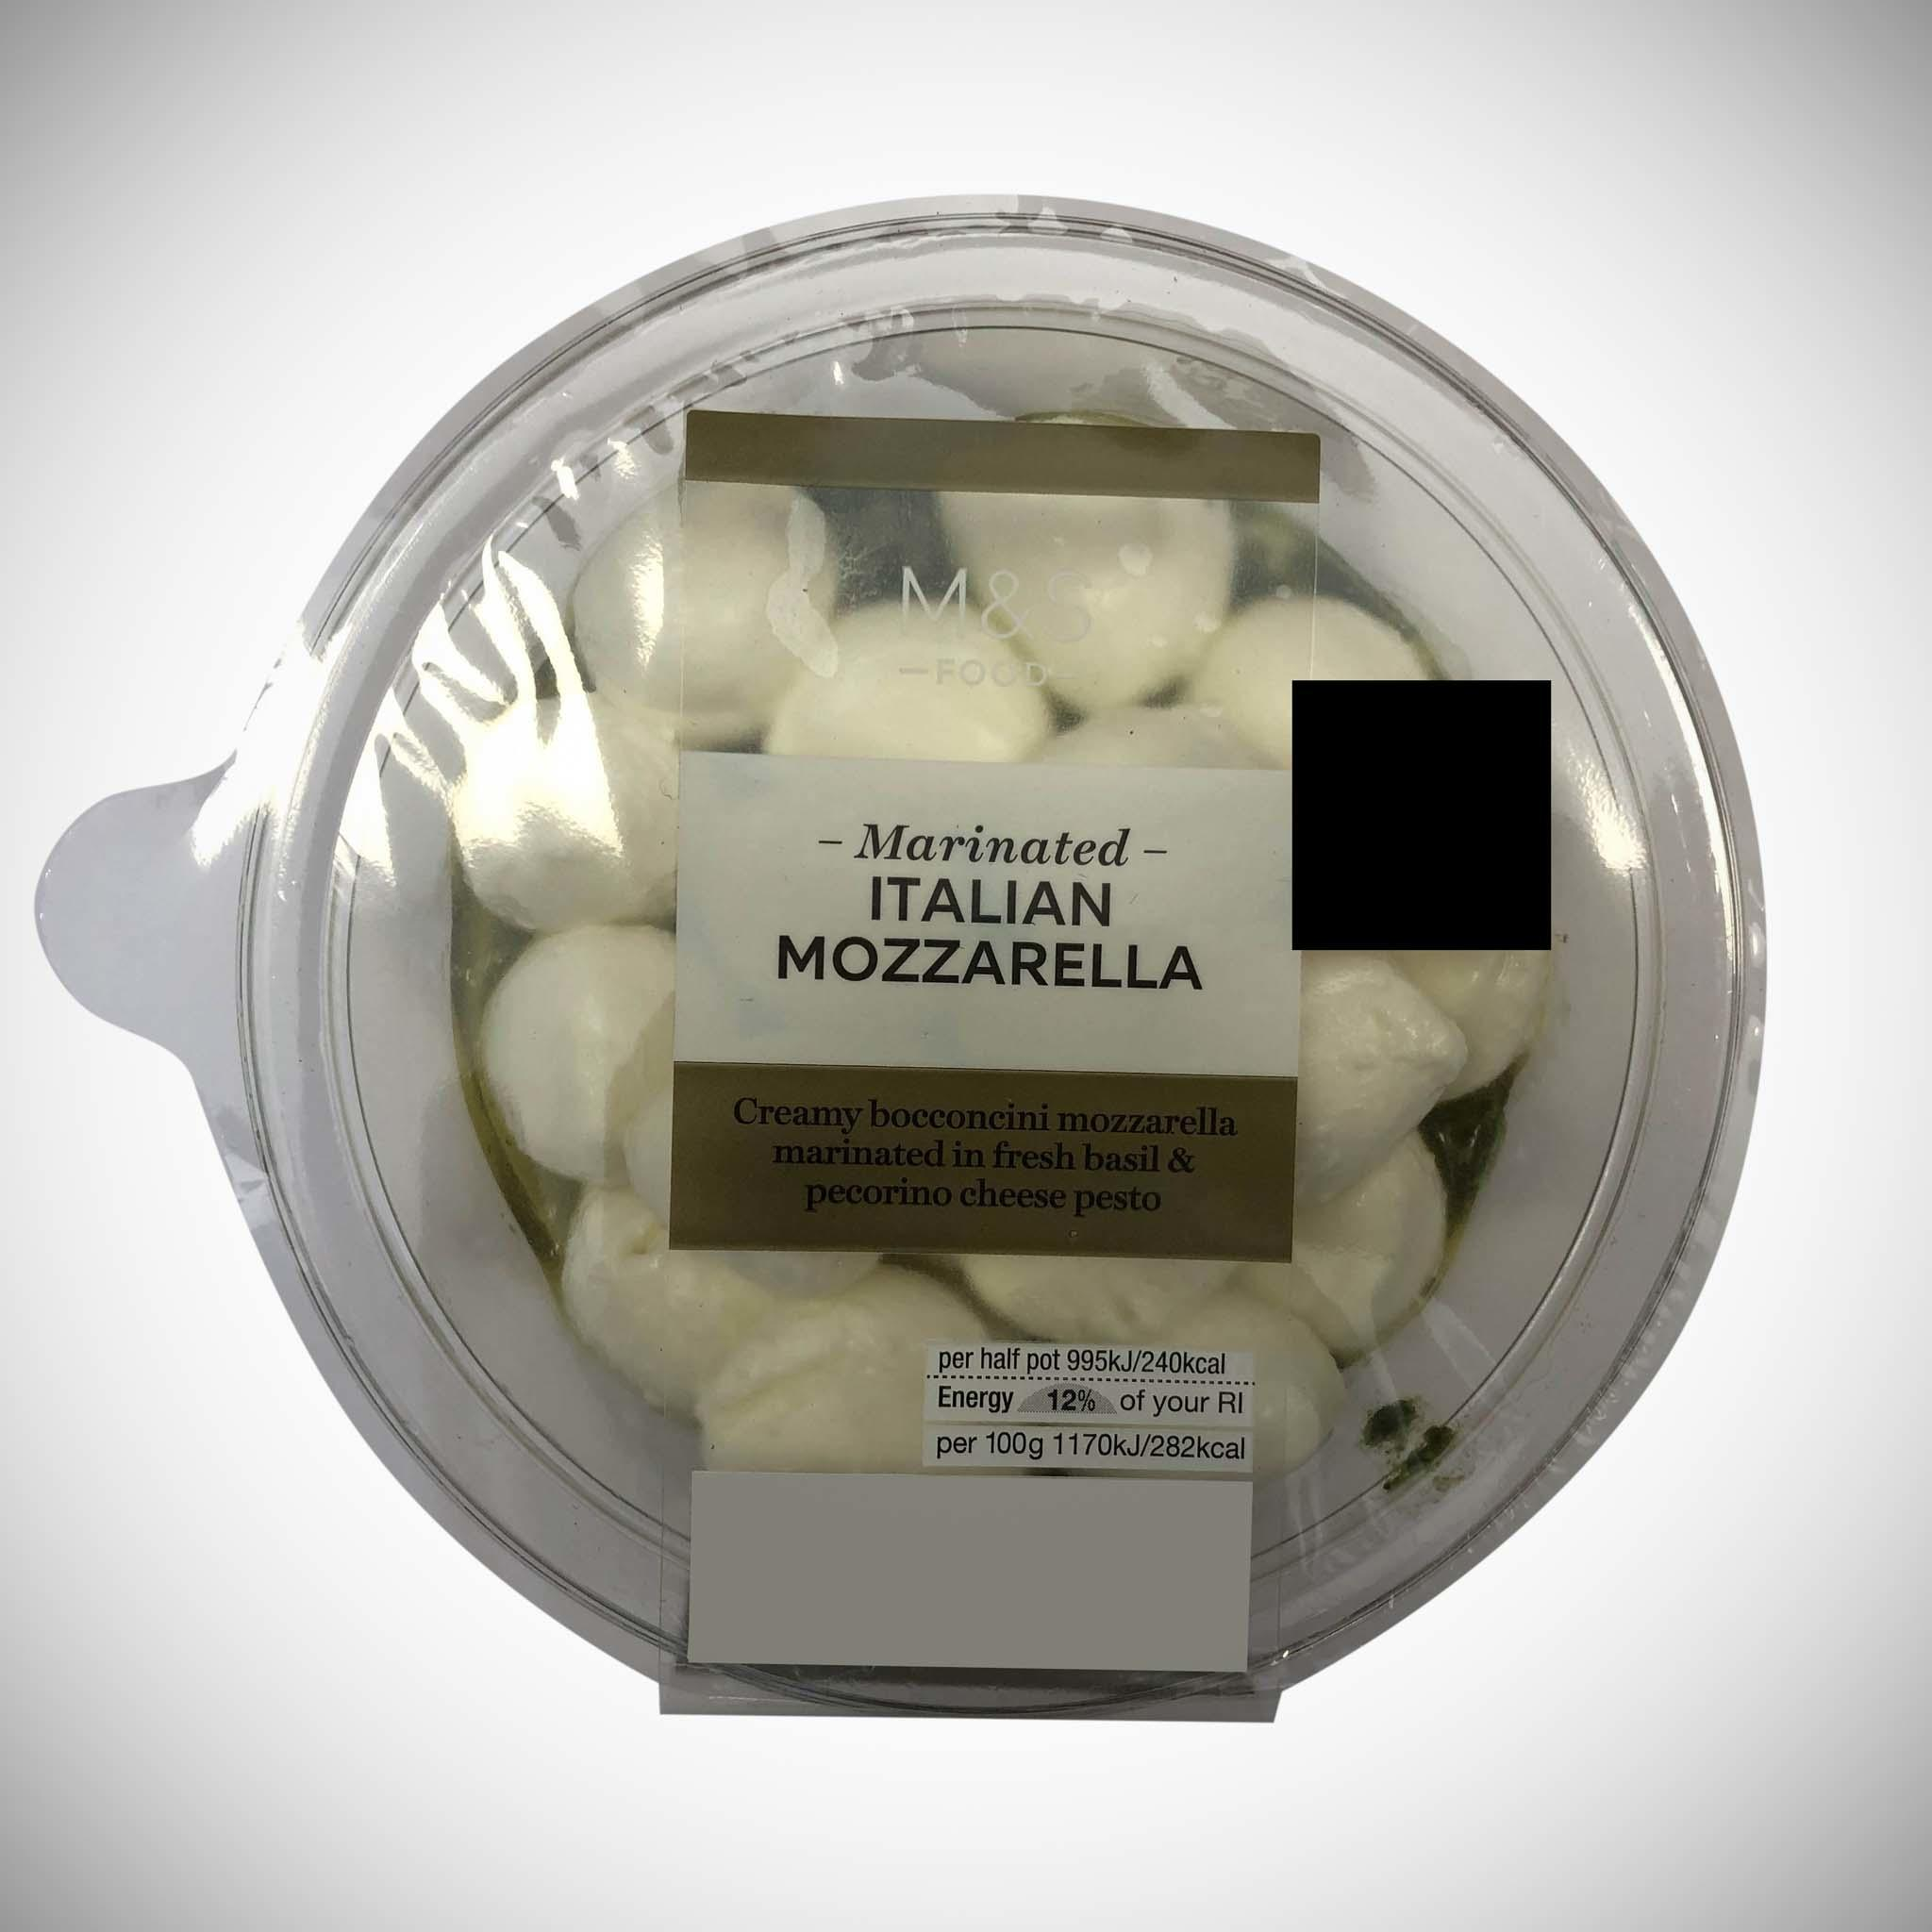 Marinated Italian Mozzarella